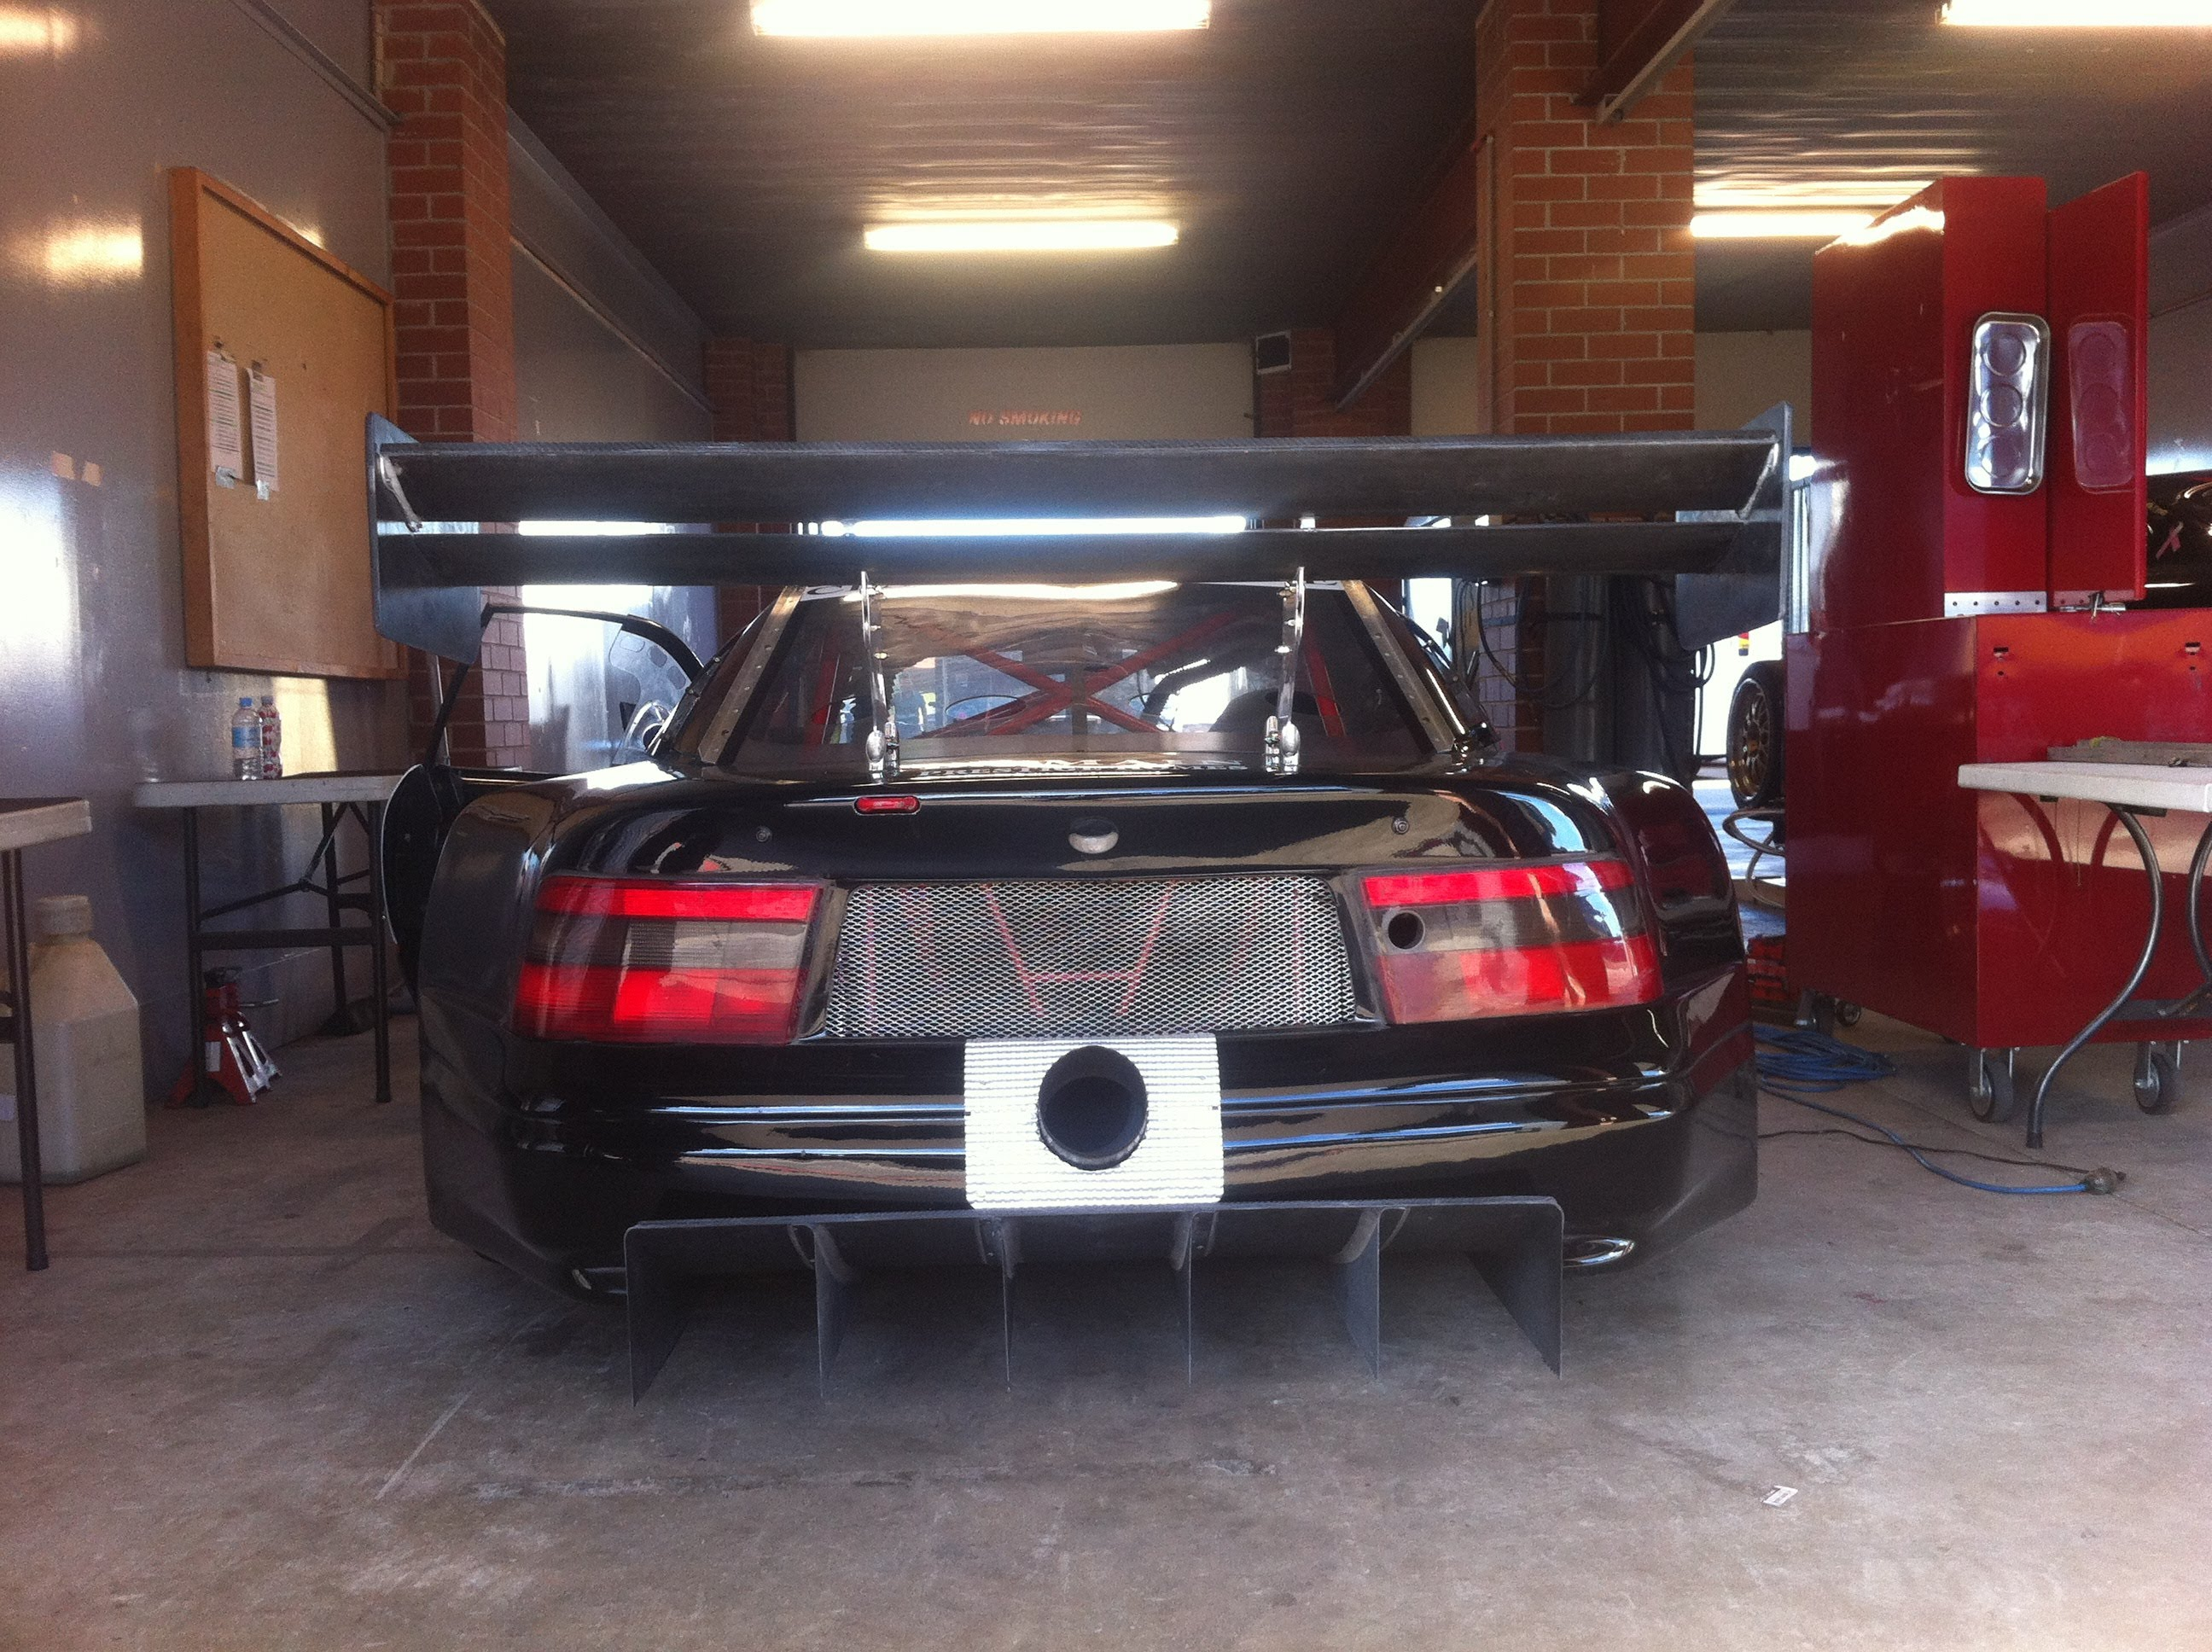 Daniel Steven Tamasi Holden Calibra Carbon Fibre Race Car Sport Sedan Rear